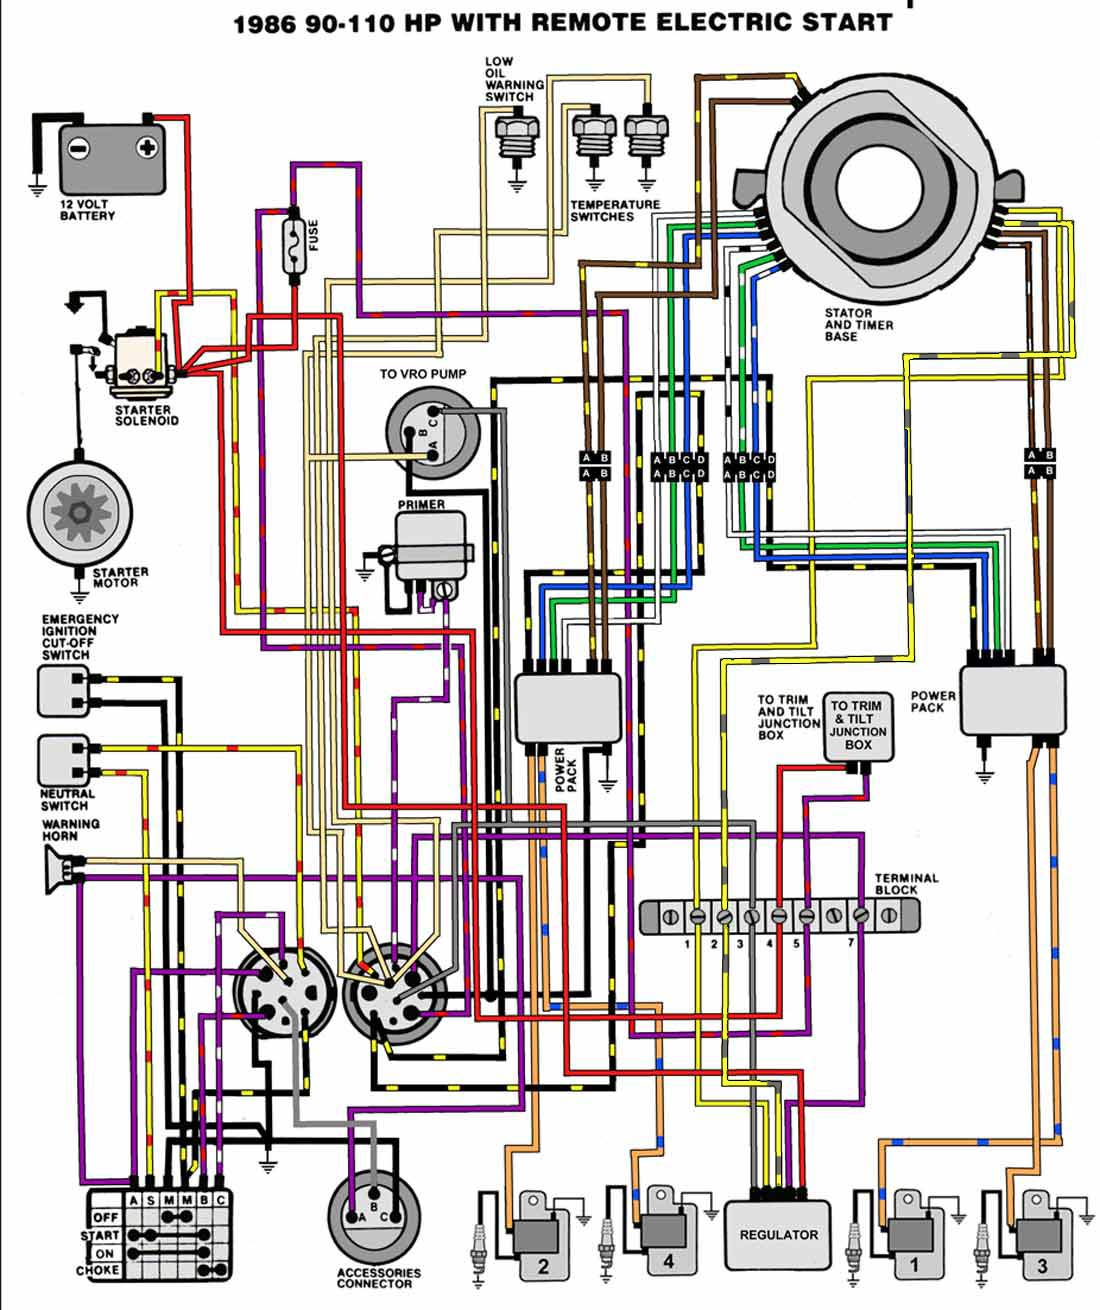 wiring diagram further johnson marine ignition switch wiring diagramjohnson outboard motor wiring diagram all wiring diagram wiring diagram further johnson marine ignition switch wiring diagram